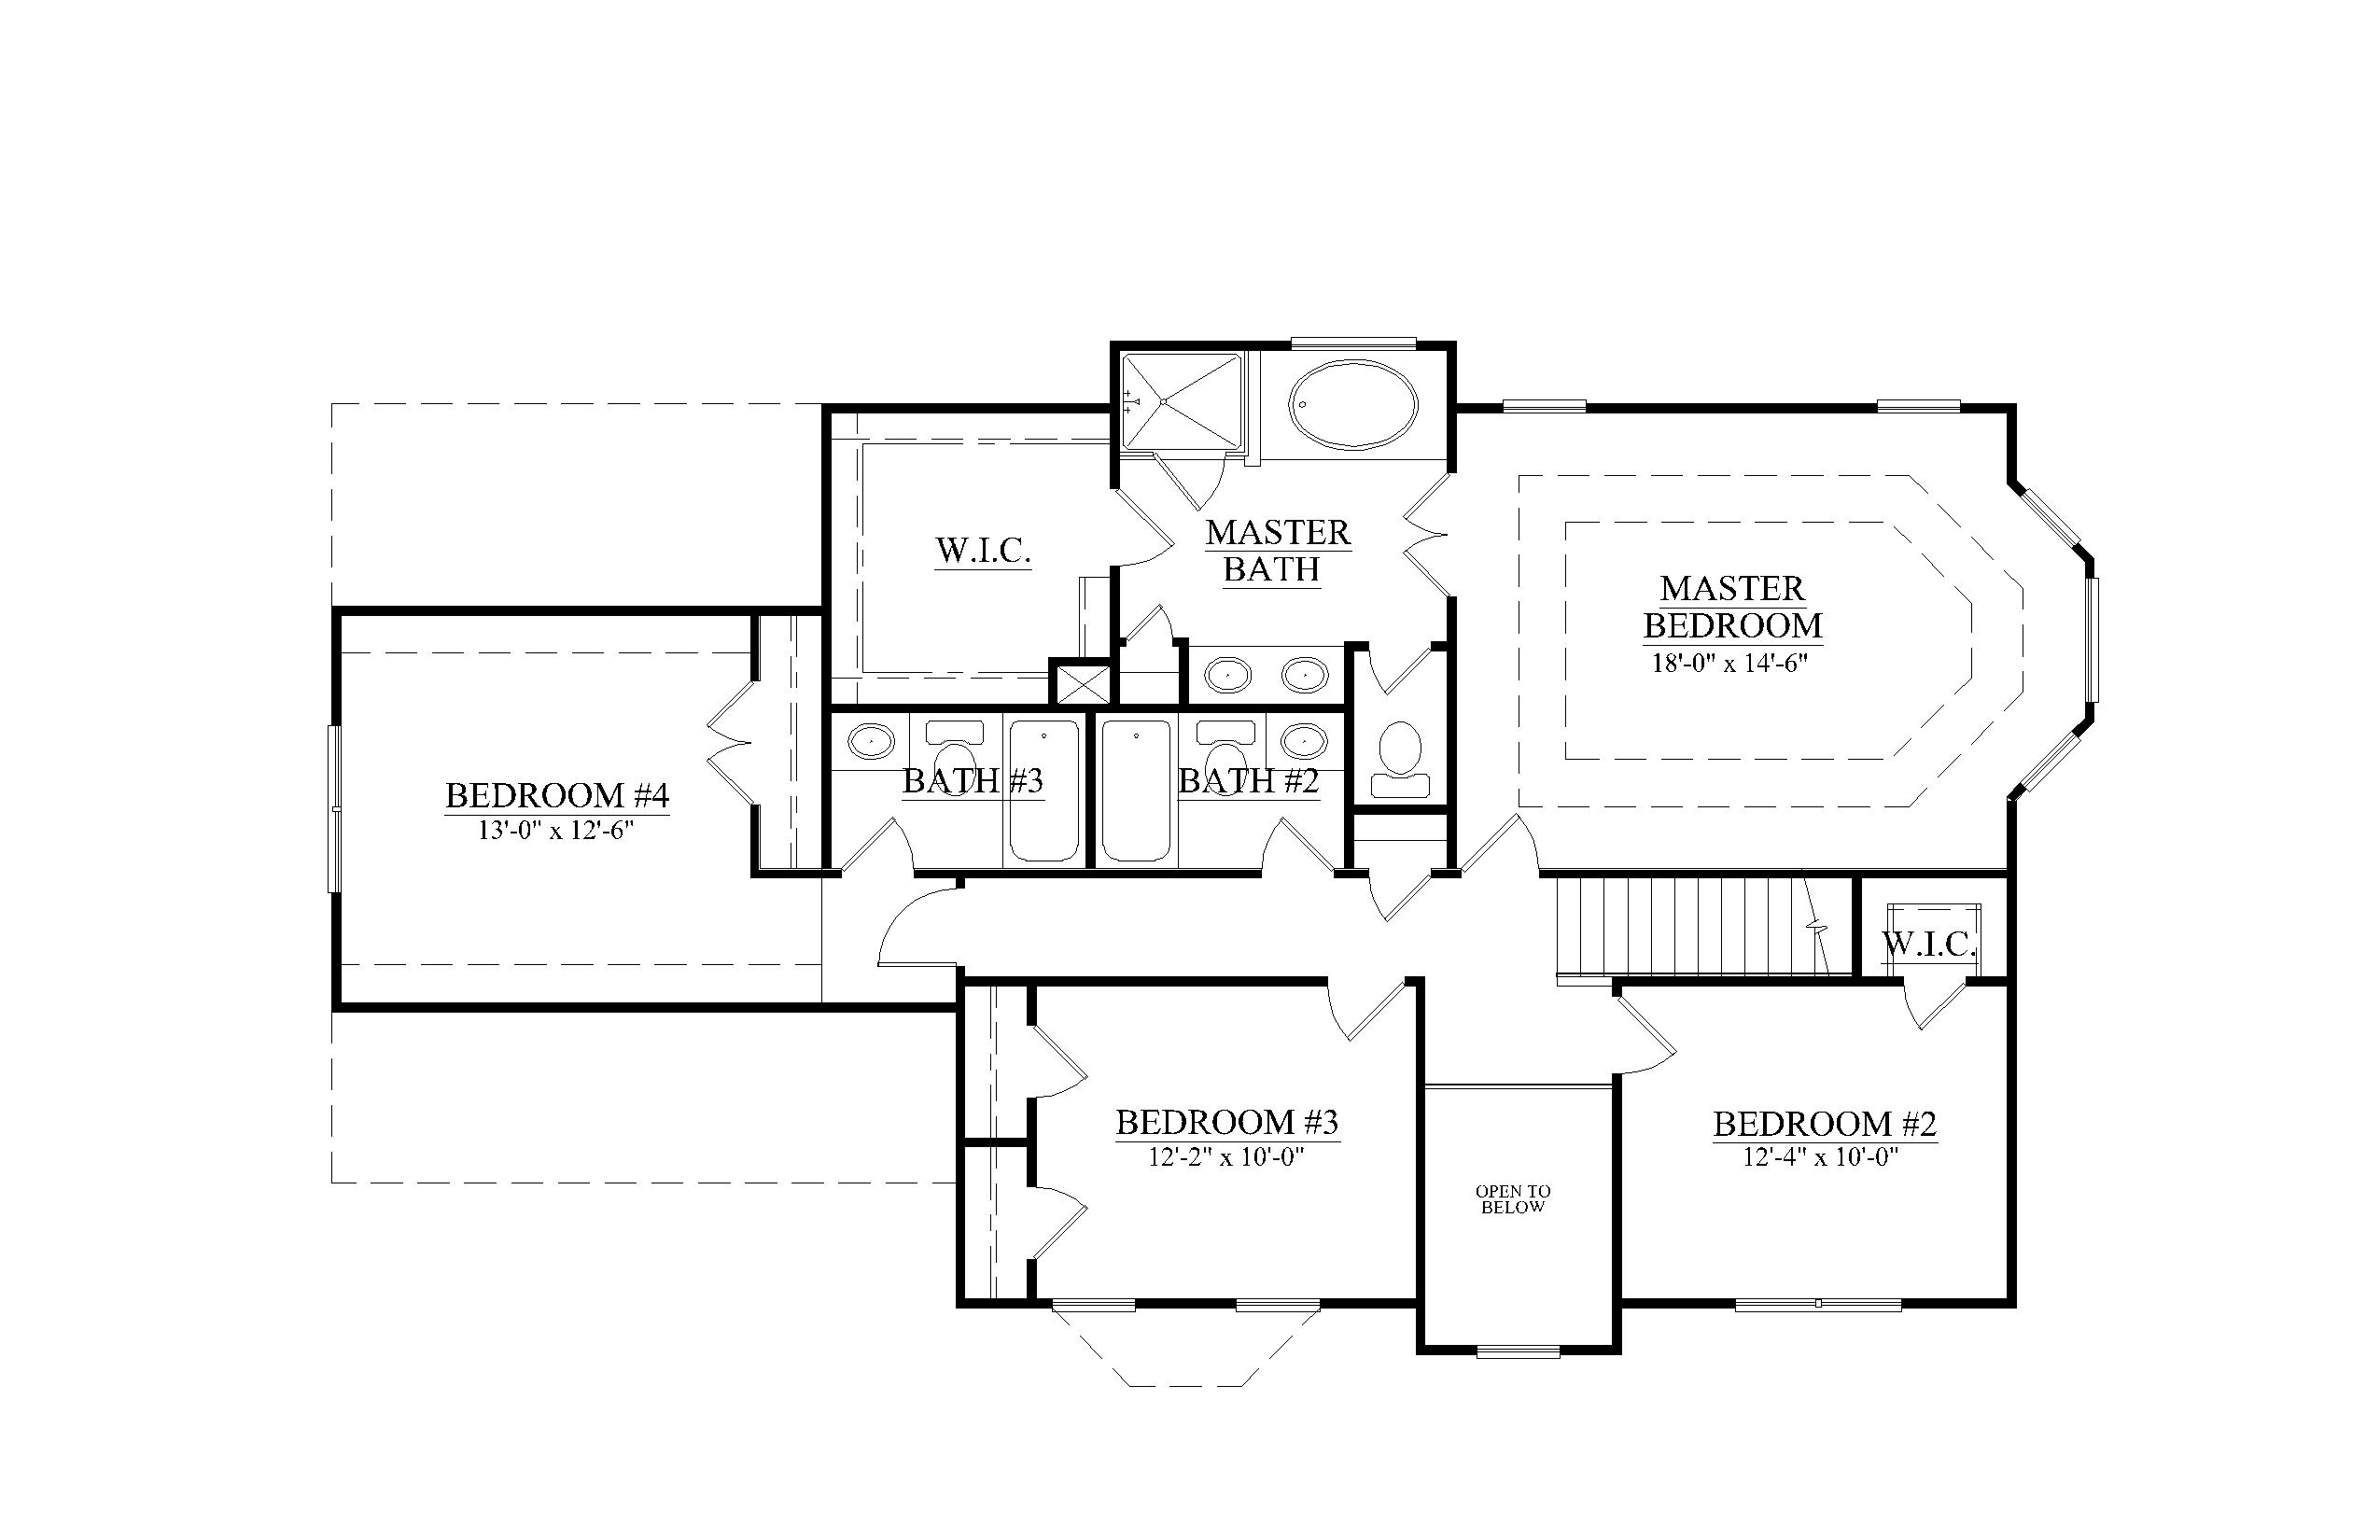 House Plans 4500 5500 Sq Ft: 4500 sq ft house plans